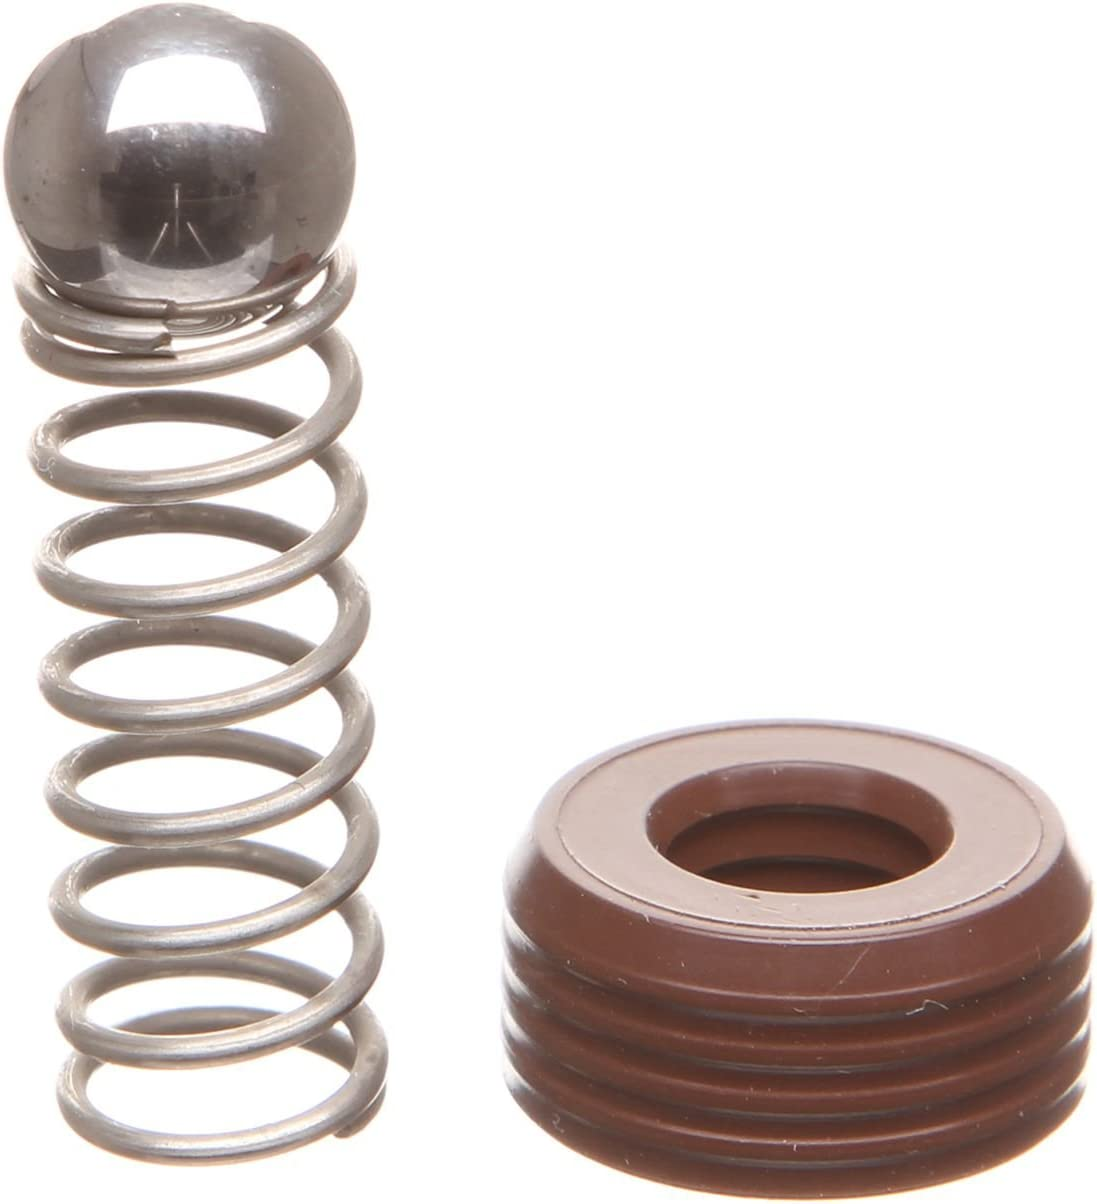 OEM Mercury Mariner Quicksilver Drive System Spring Kit Fits Bravo 24-17997A1